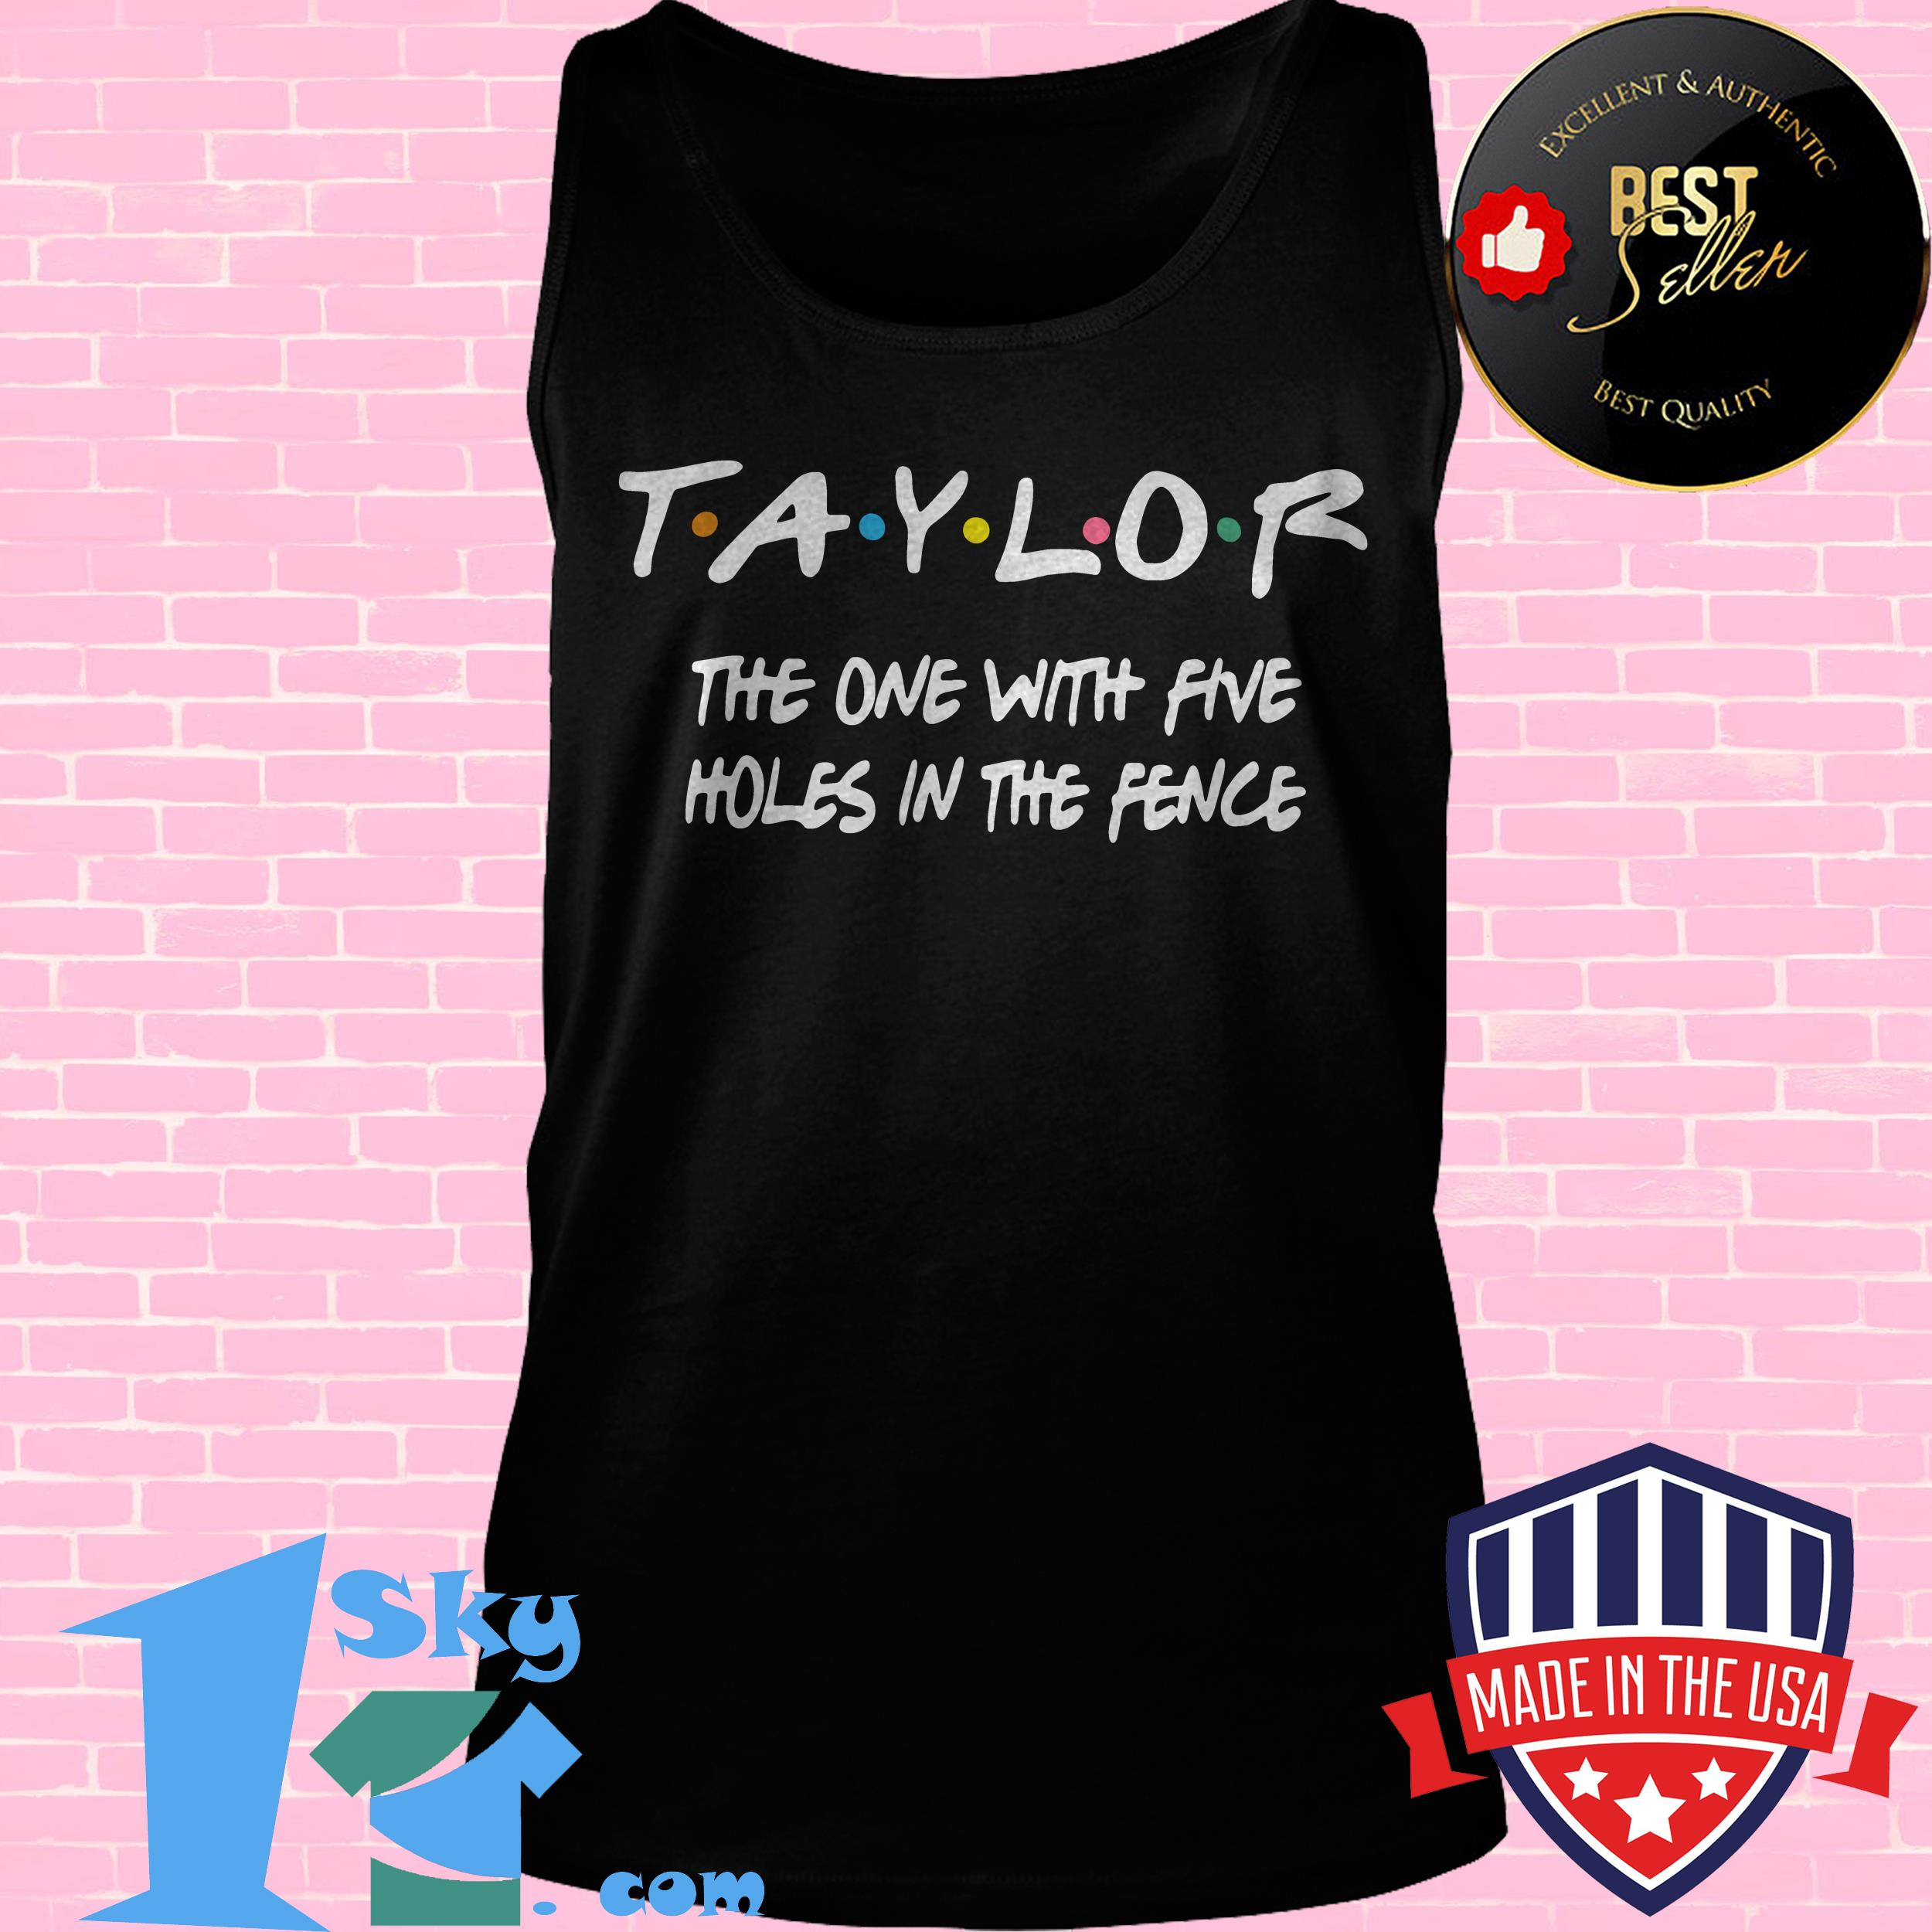 taylor swift the one with five holes in the fence tank top - Taylor Swift The One With Five Holes In The Fence shirt